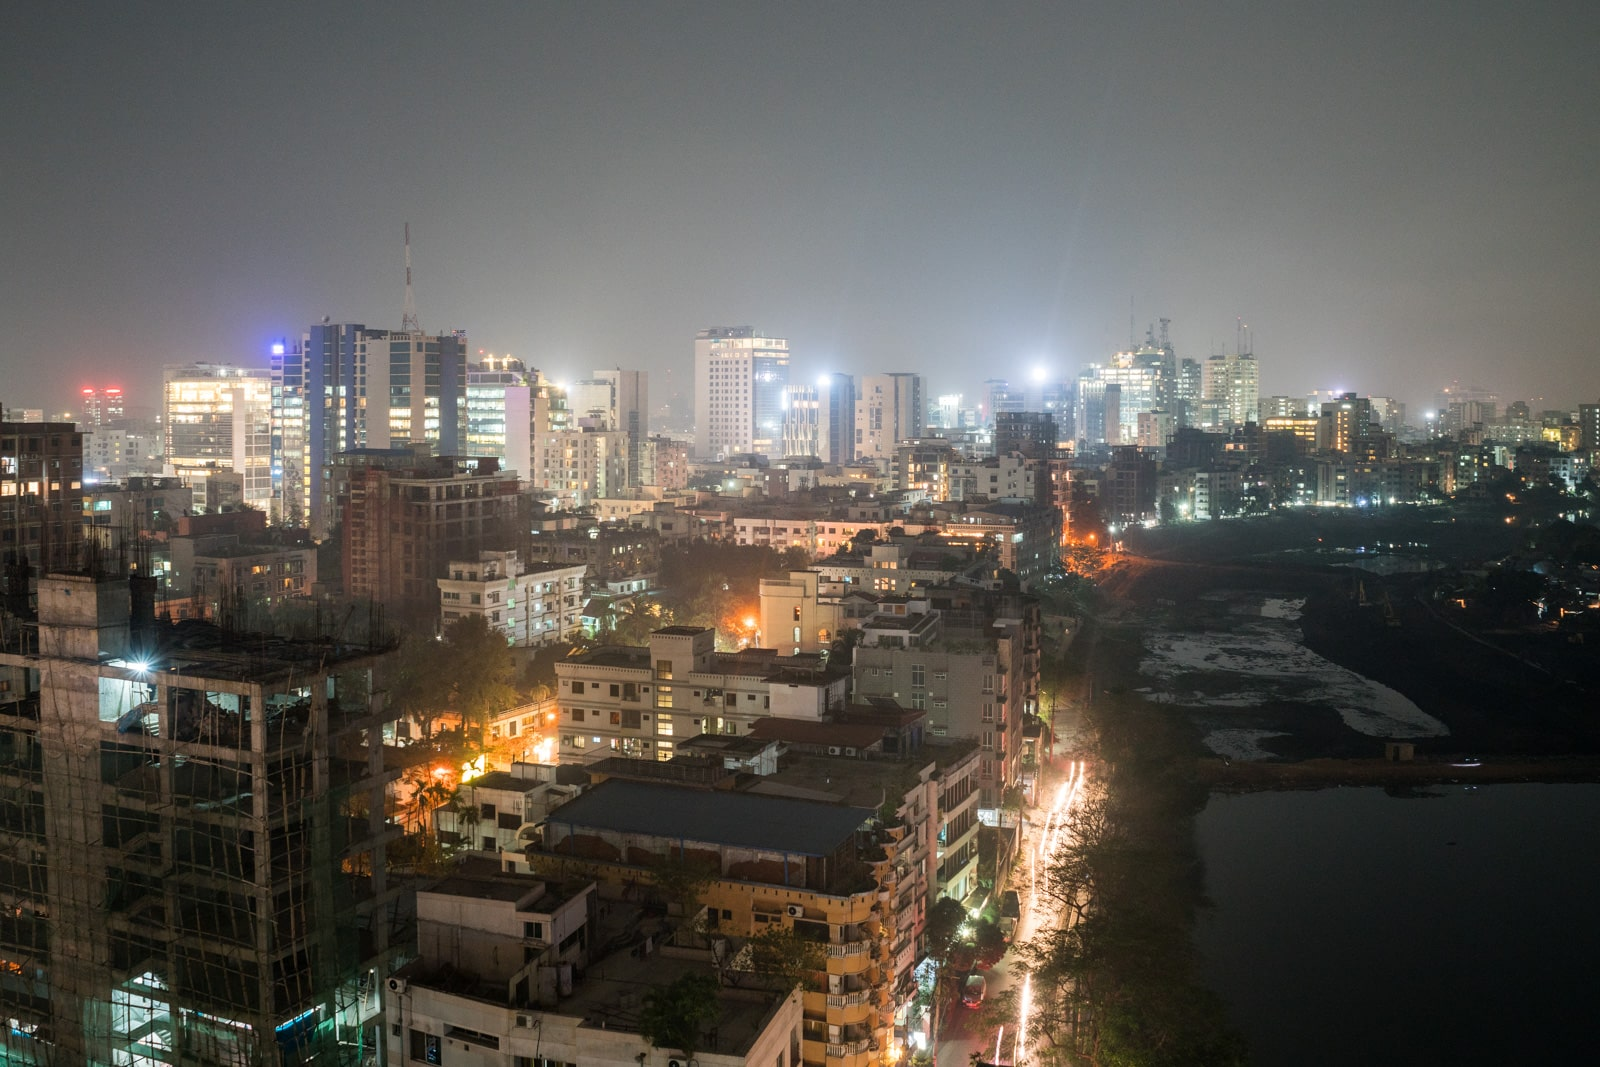 Backpacking in Bangladesh travel guide - North Dhaka from above at night - Lost With Purpose travel blog